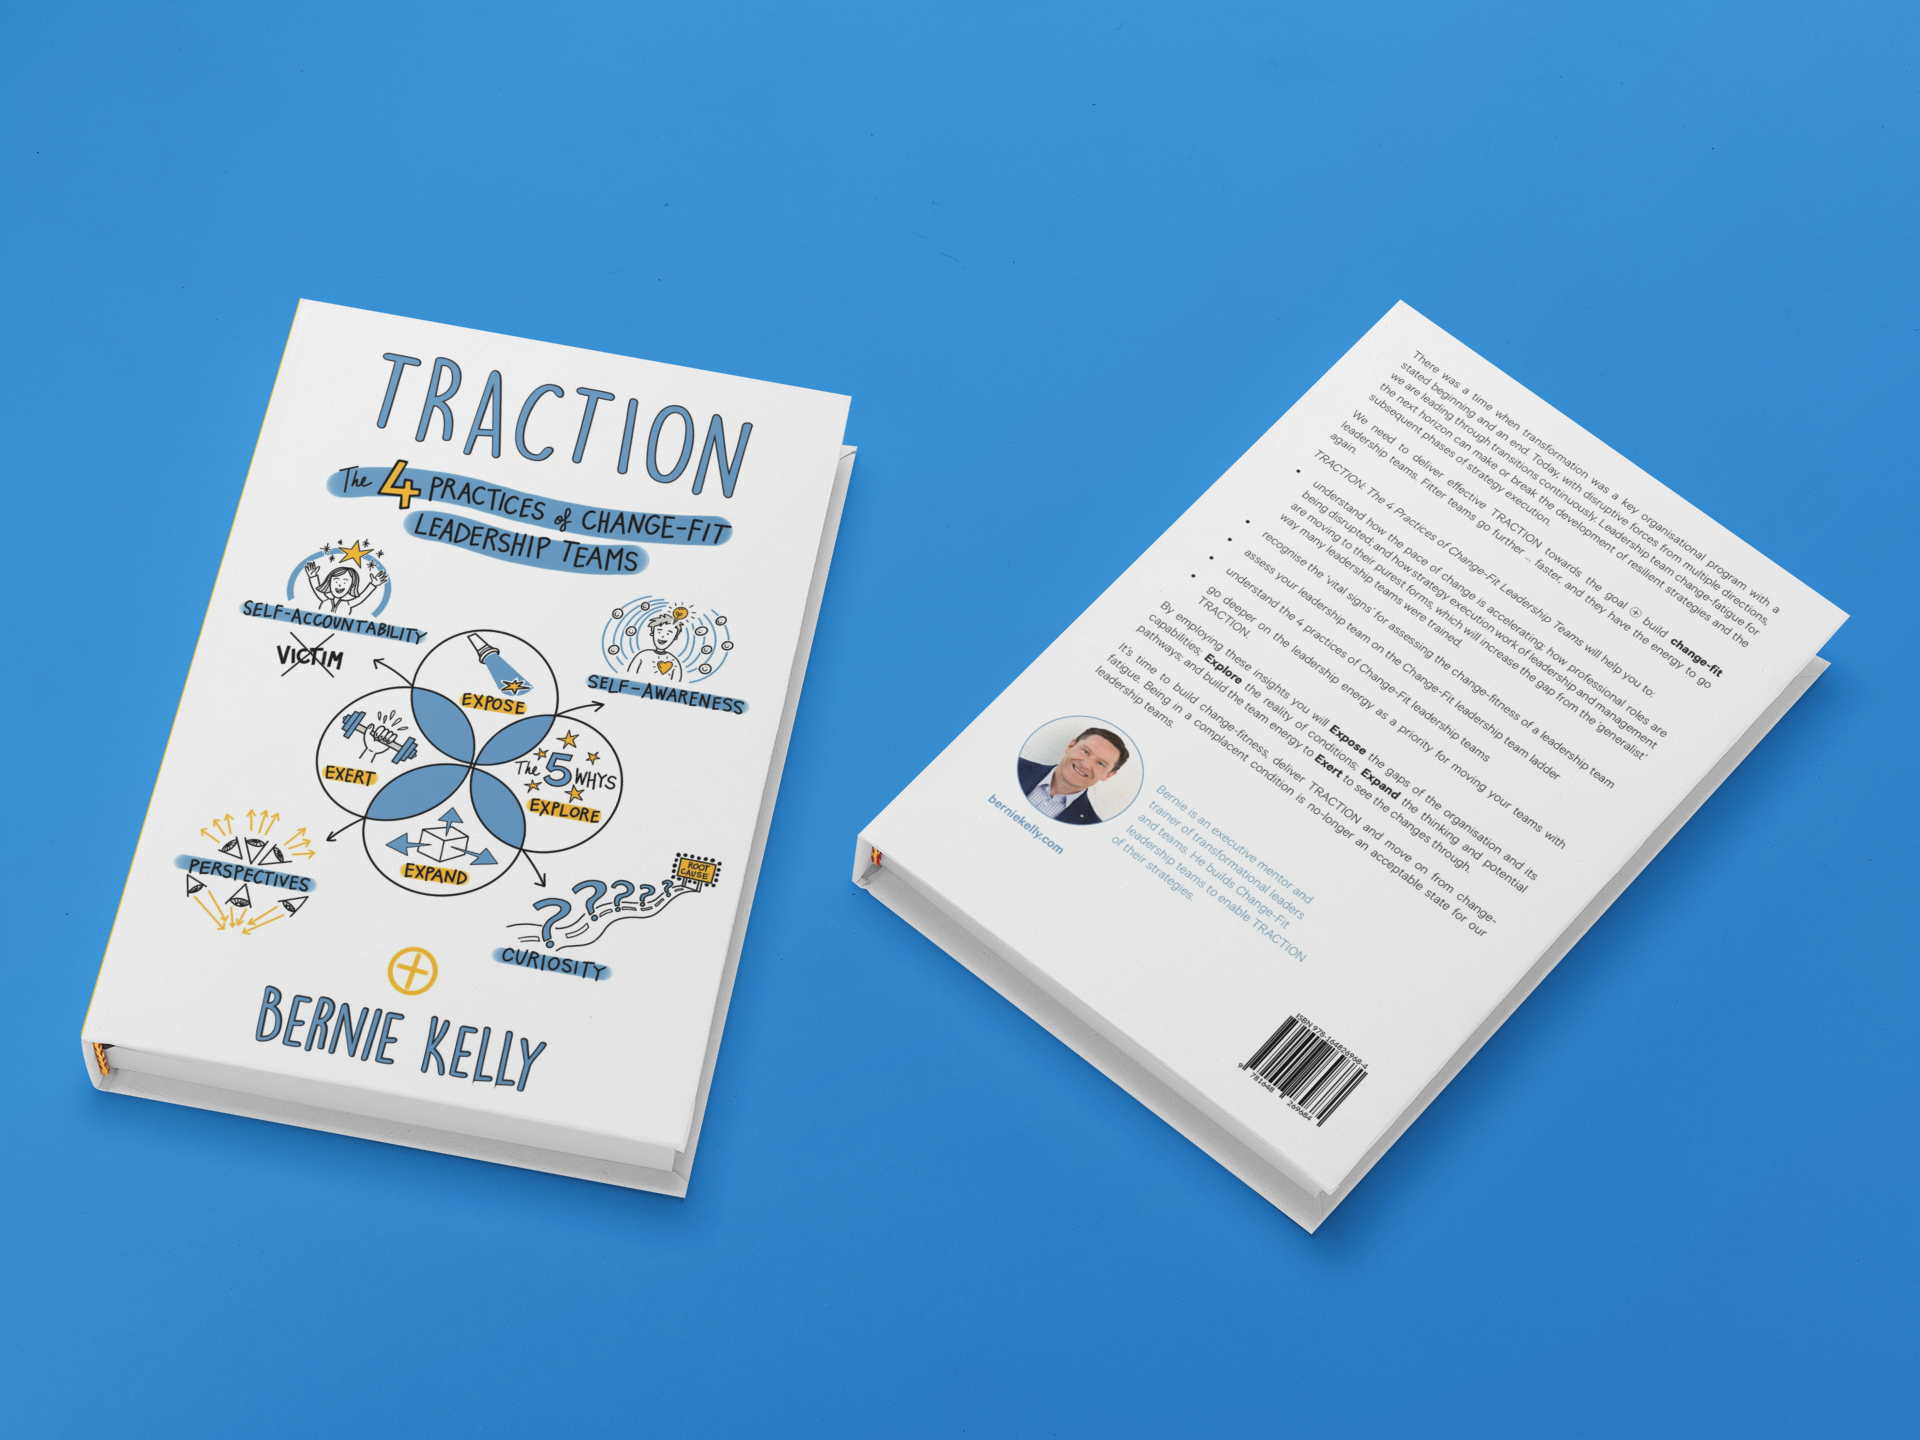 3D traction book cover